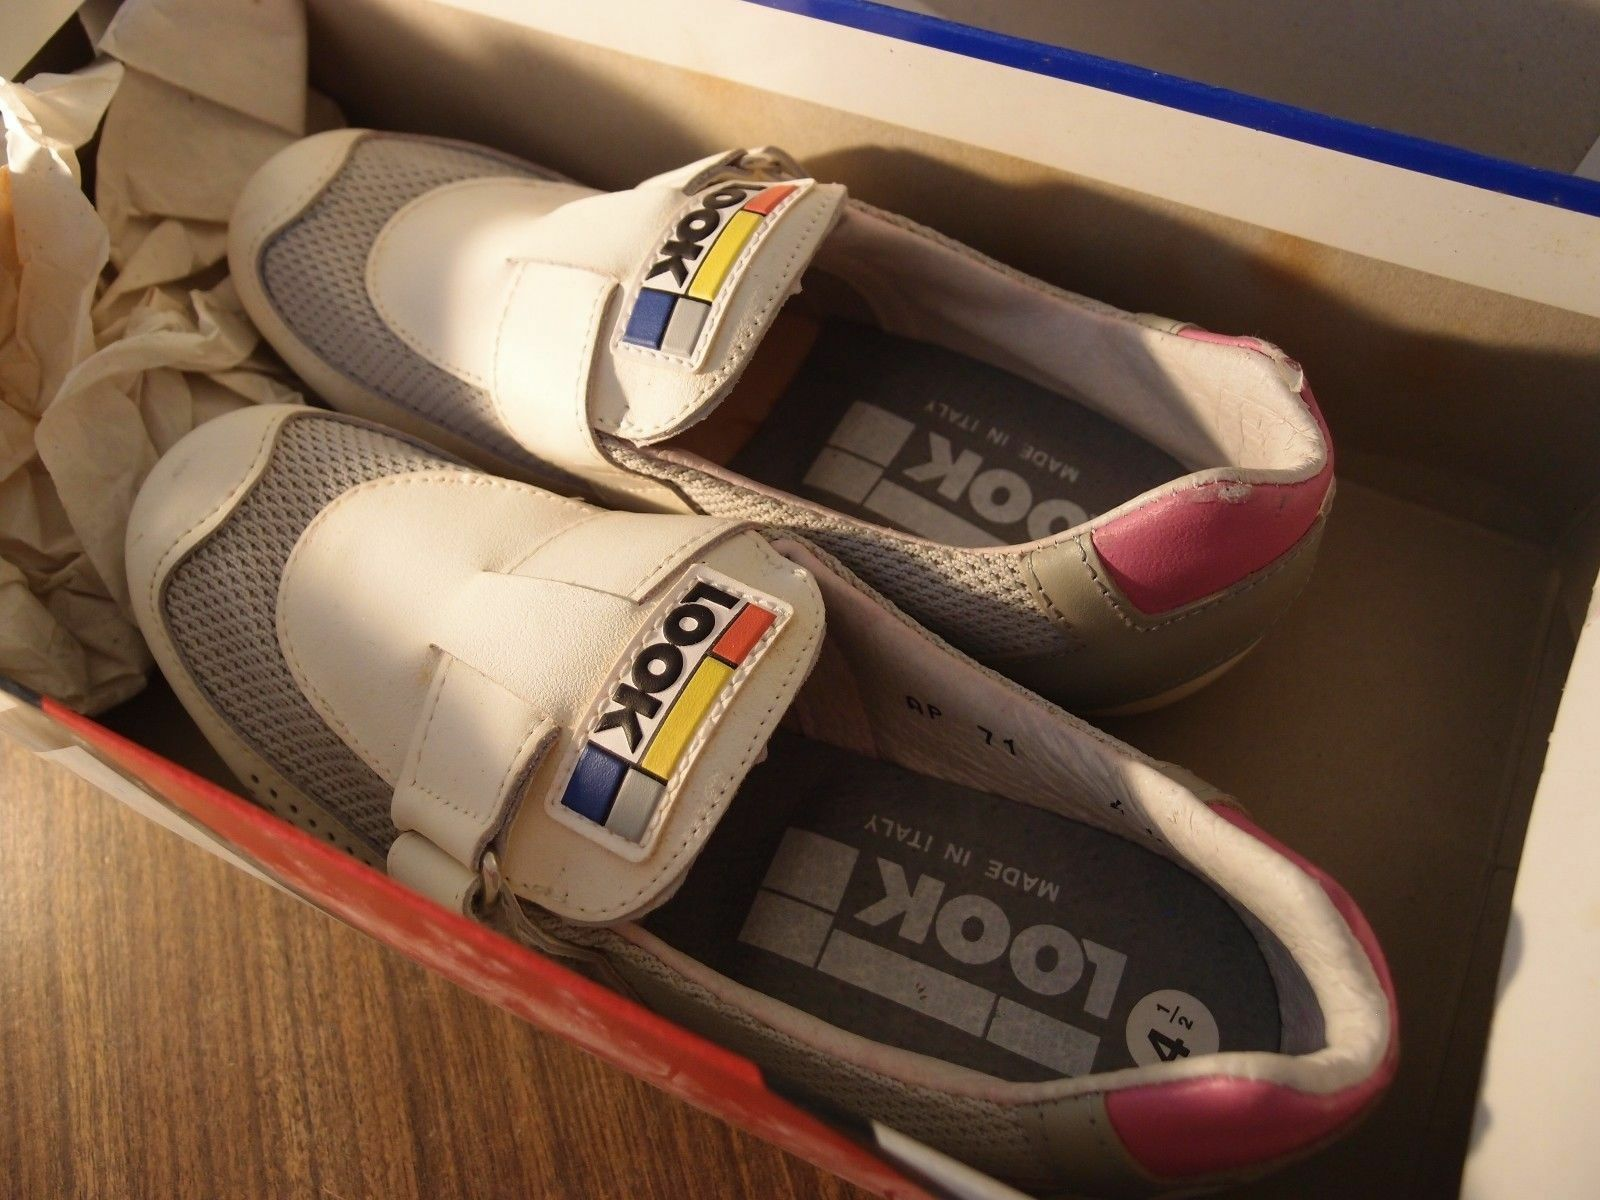 1988 Racing shoes LOOK 4  1 2  made in France 37 size vintage racing l'eroica  quality product